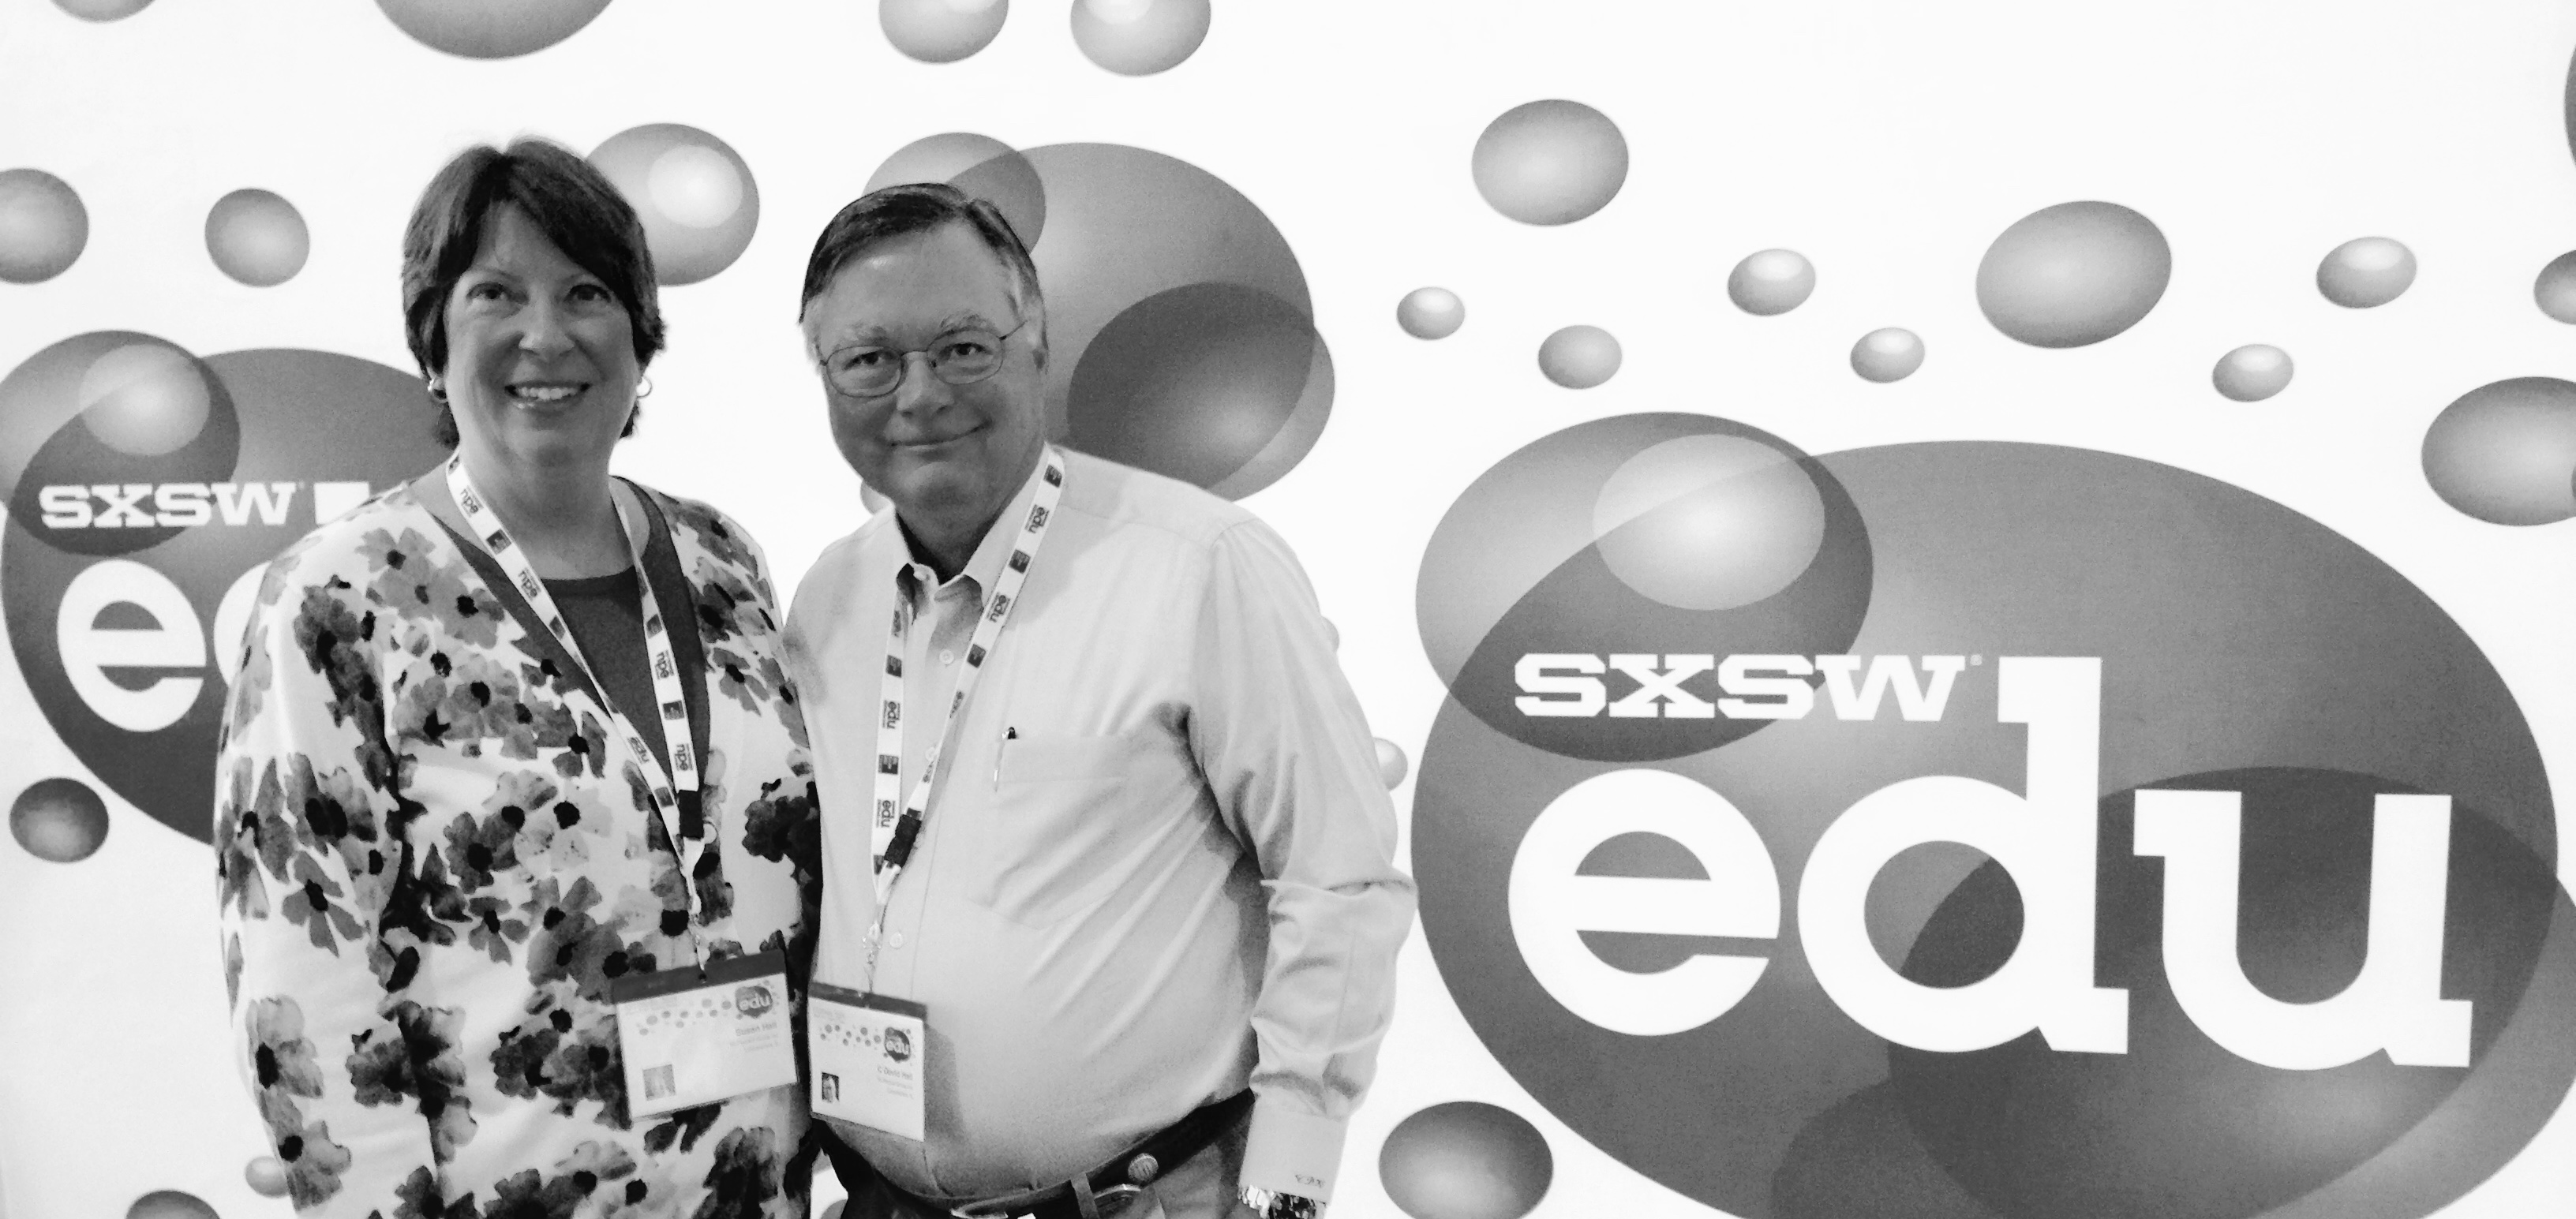 Susan and David at SXSW